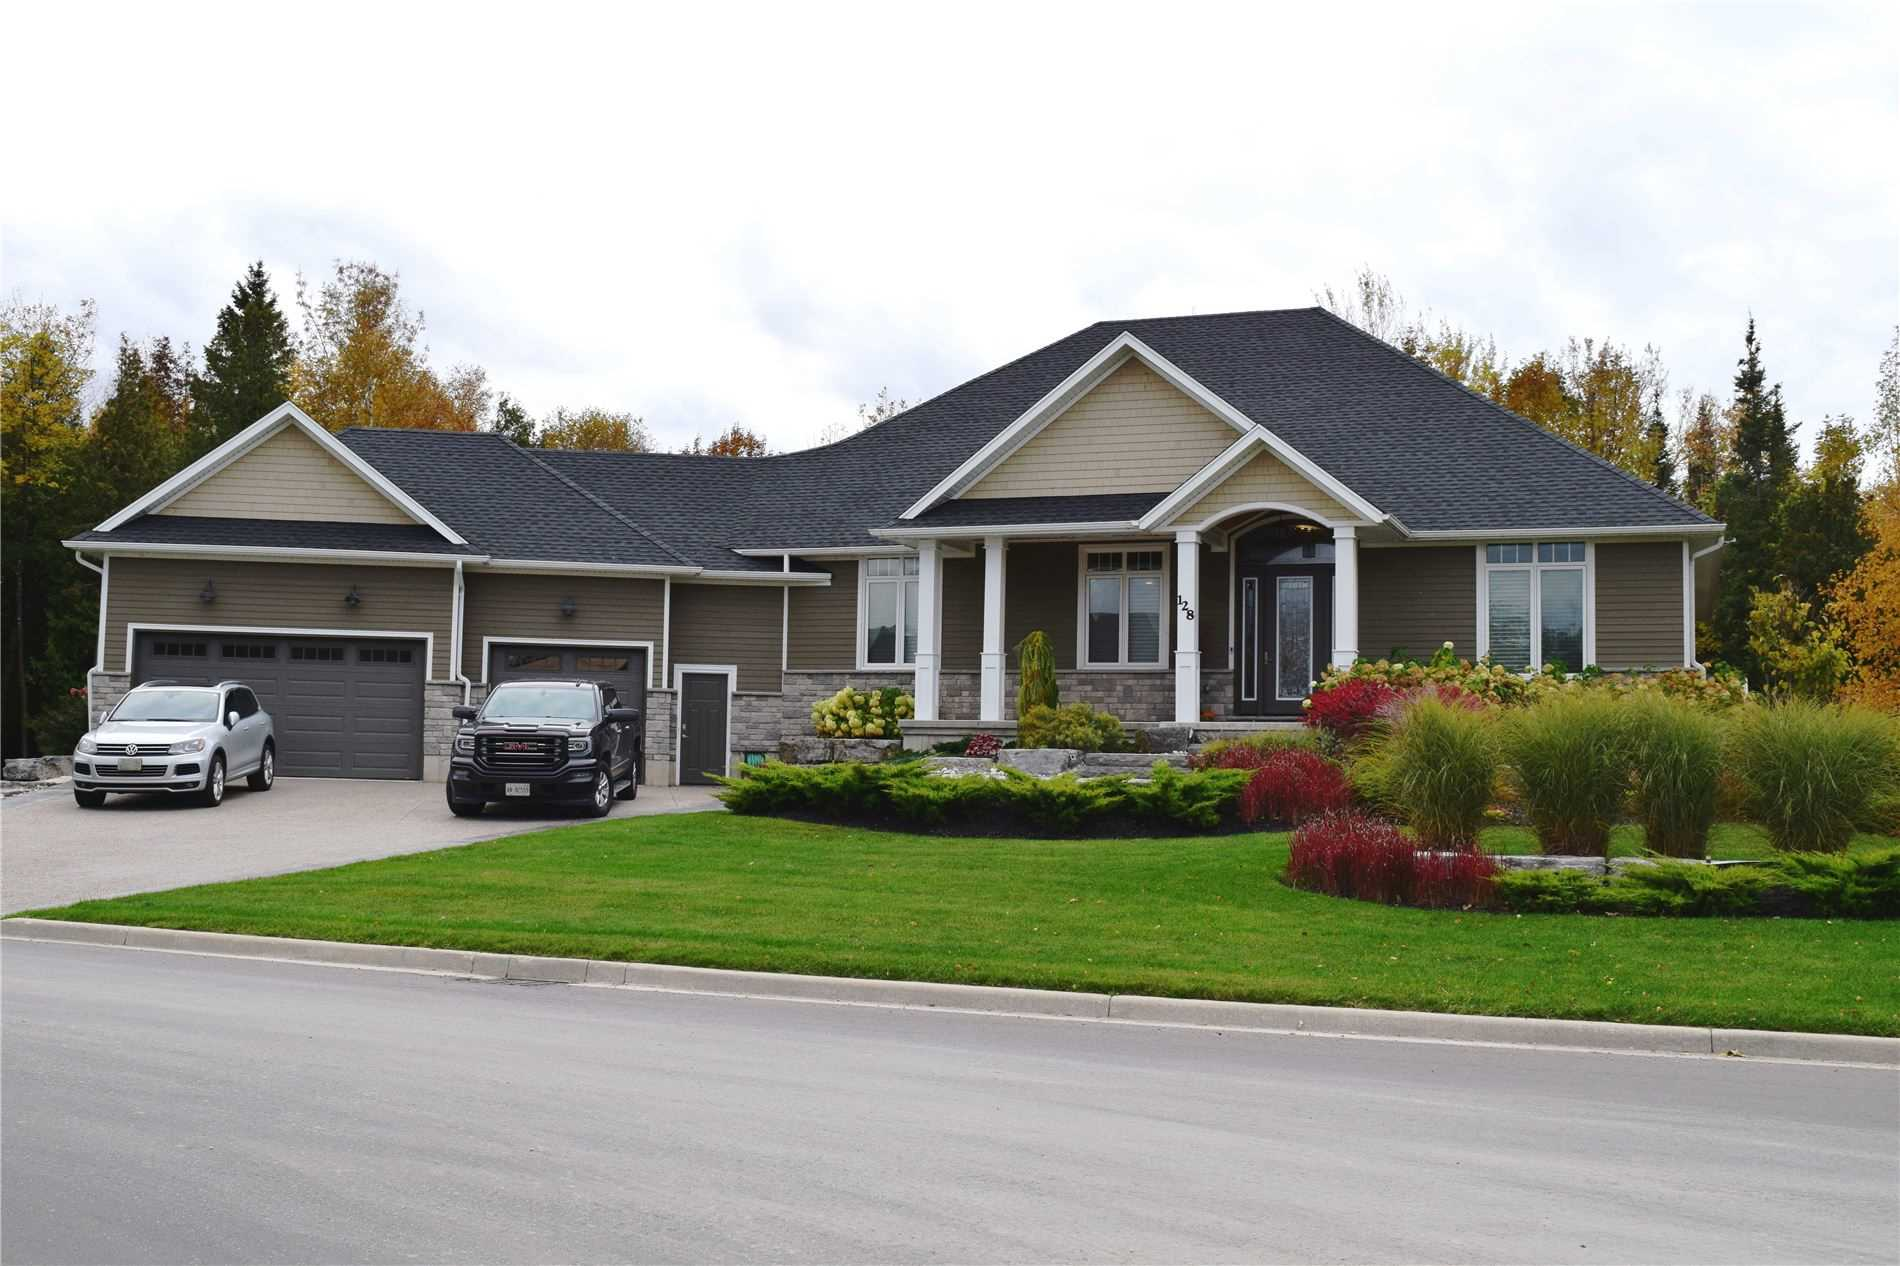 pictures of house for sale MLS: X4663295 located at 128 Trillium Dr, Saugeen Shores N0H2C2